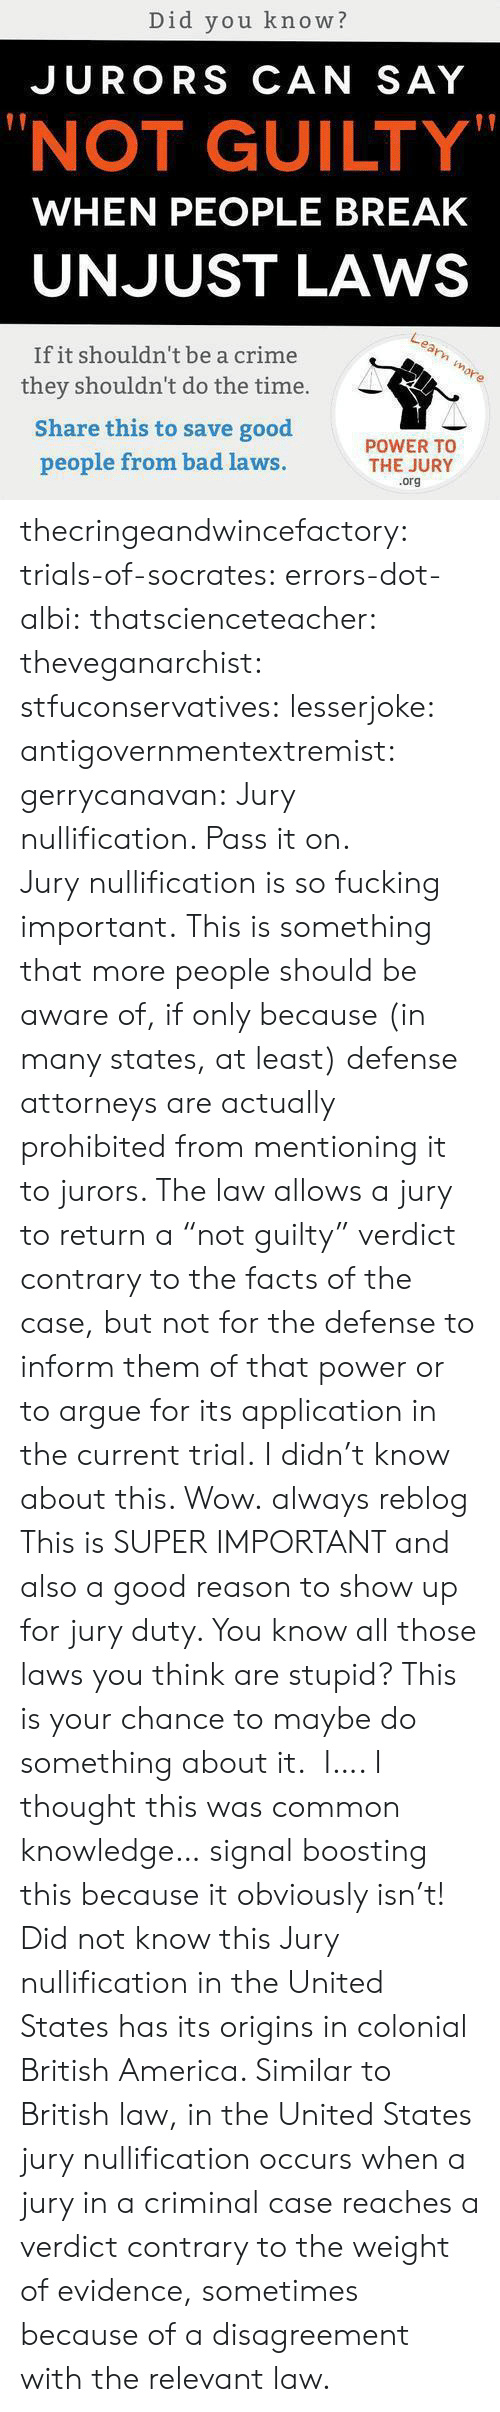 "attorneys: Did you know?  JURORS CAN SAY  ""NOT GUILTY""  WHEN PEOPLE BREAK  UNJUST LAWS  If it shouldn't be a crime  they shouldn't do the time.  Share this to save good  people from bad laws  POWER TO  THE JURY  .org thecringeandwincefactory:  trials-of-socrates:   errors-dot-albi:  thatscienceteacher:  theveganarchist:  stfuconservatives:  lesserjoke:  antigovernmentextremist:  gerrycanavan:  Jury nullification. Pass it on.  Jury nullification is so fucking important.  This is something that more people should be aware of, if only because (in many states, at least) defense attorneys are actually prohibited from mentioning it to jurors. The law allows a jury to return a ""not guilty"" verdict contrary to the facts of the case, but not for the defense to inform them of that power or to argue for its application in the current trial.  I didn't know about this. Wow.  always reblog  This is SUPER IMPORTANT and also a good reason to show up for jury duty. You know all those laws you think are stupid? This is your chance to maybe do something about it.   I…. I thought this was common knowledge… signal boosting this because it obviously isn't!  Did not know this   Jury nullification in the United States has its origins in colonial British America. Similar to British law, in the United States jury nullification occurs when a jury in a criminal case reaches a verdict contrary to the weight of evidence, sometimes because of a disagreement with the relevant law."